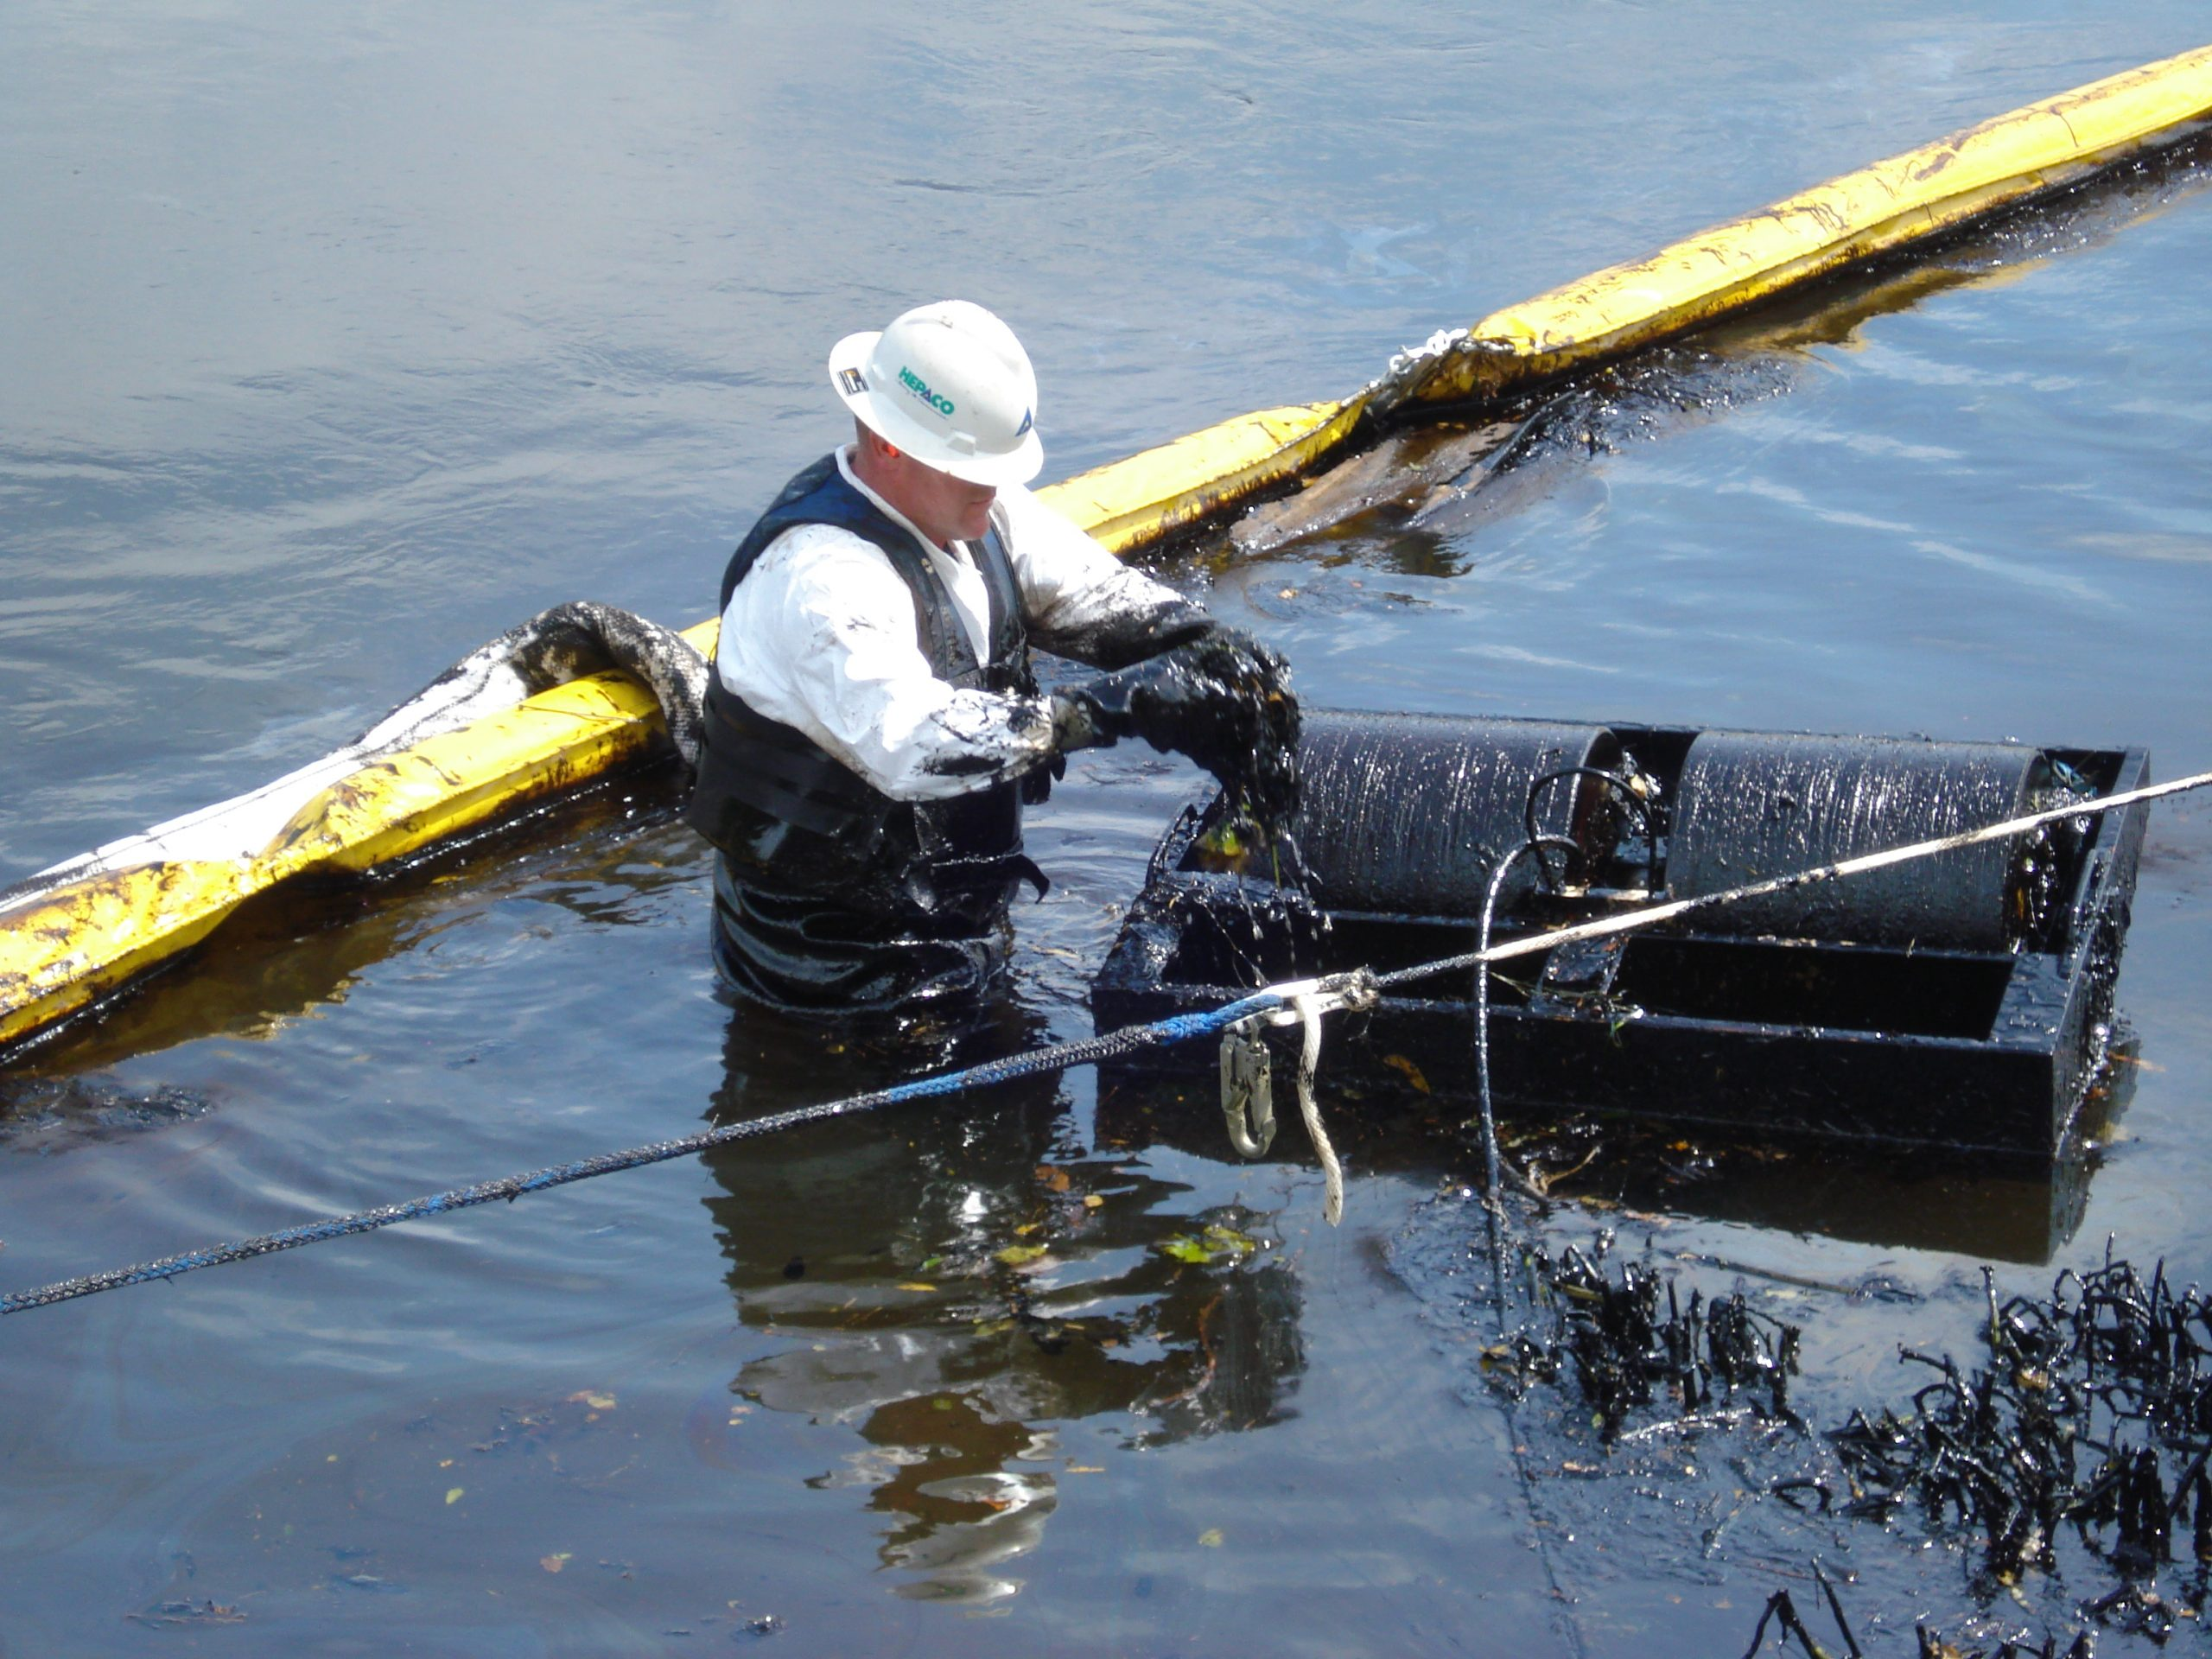 Worker cleaning up the Kalamazoo River on Aug. 4, 2012.